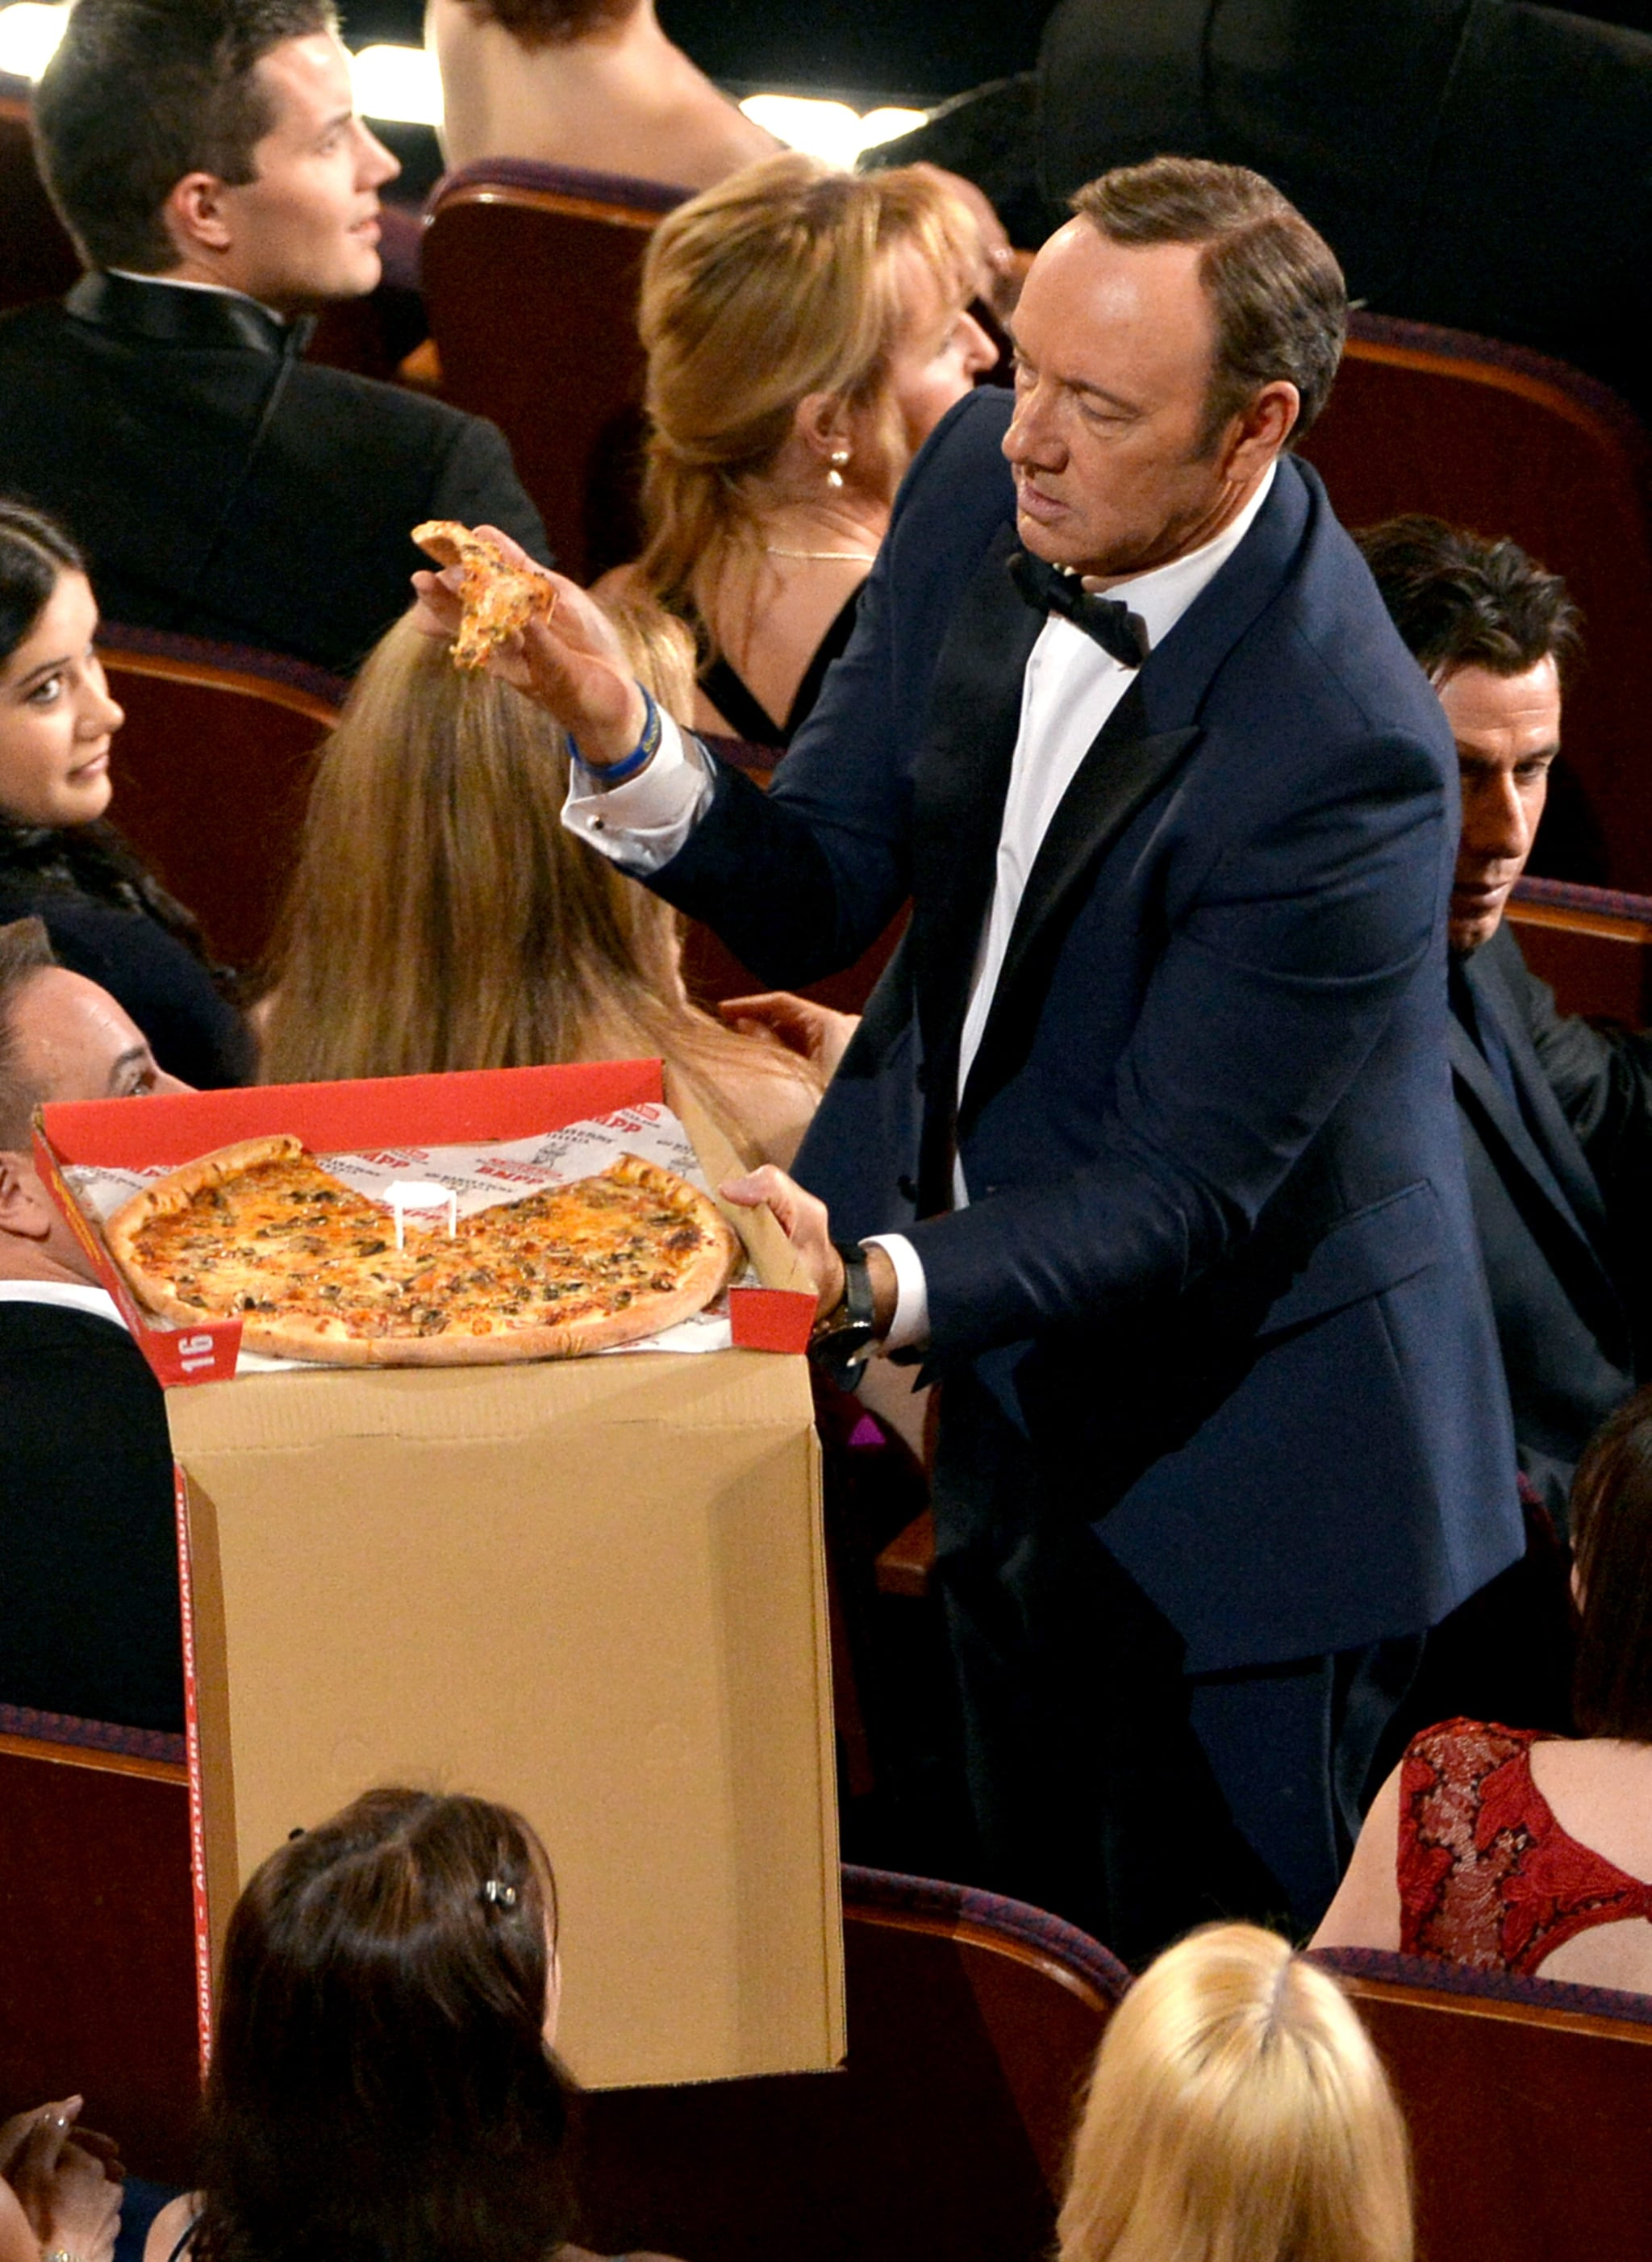 Best Pizza Passing in a Tuxedo: Kevin Spacey